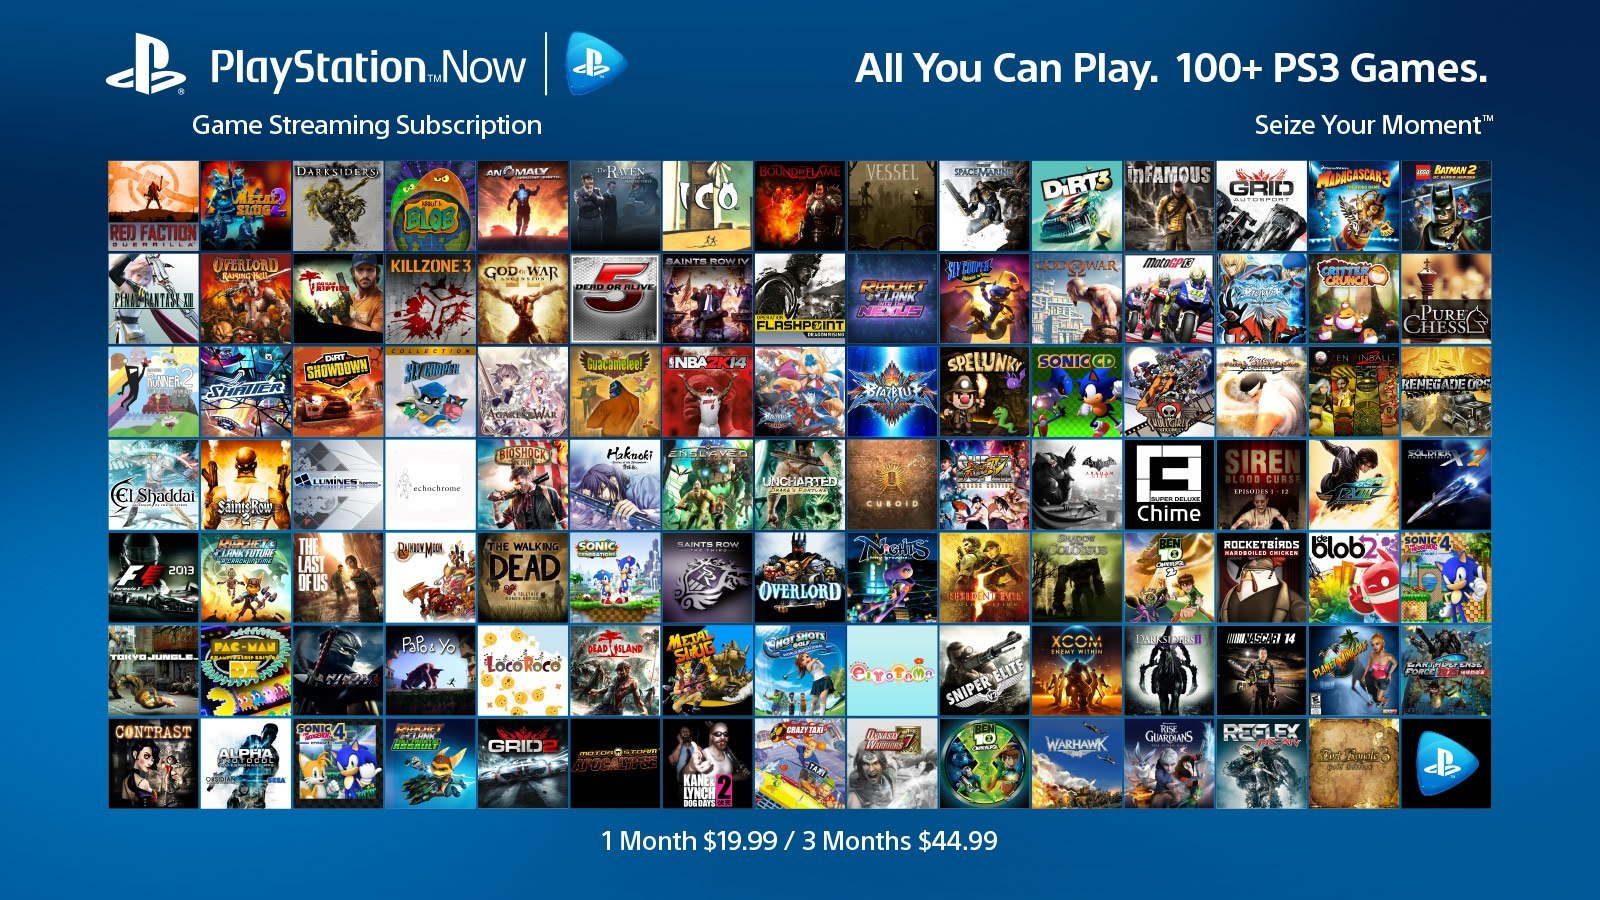 All Games For Ps3 : Ces playstation now will let you play all the games